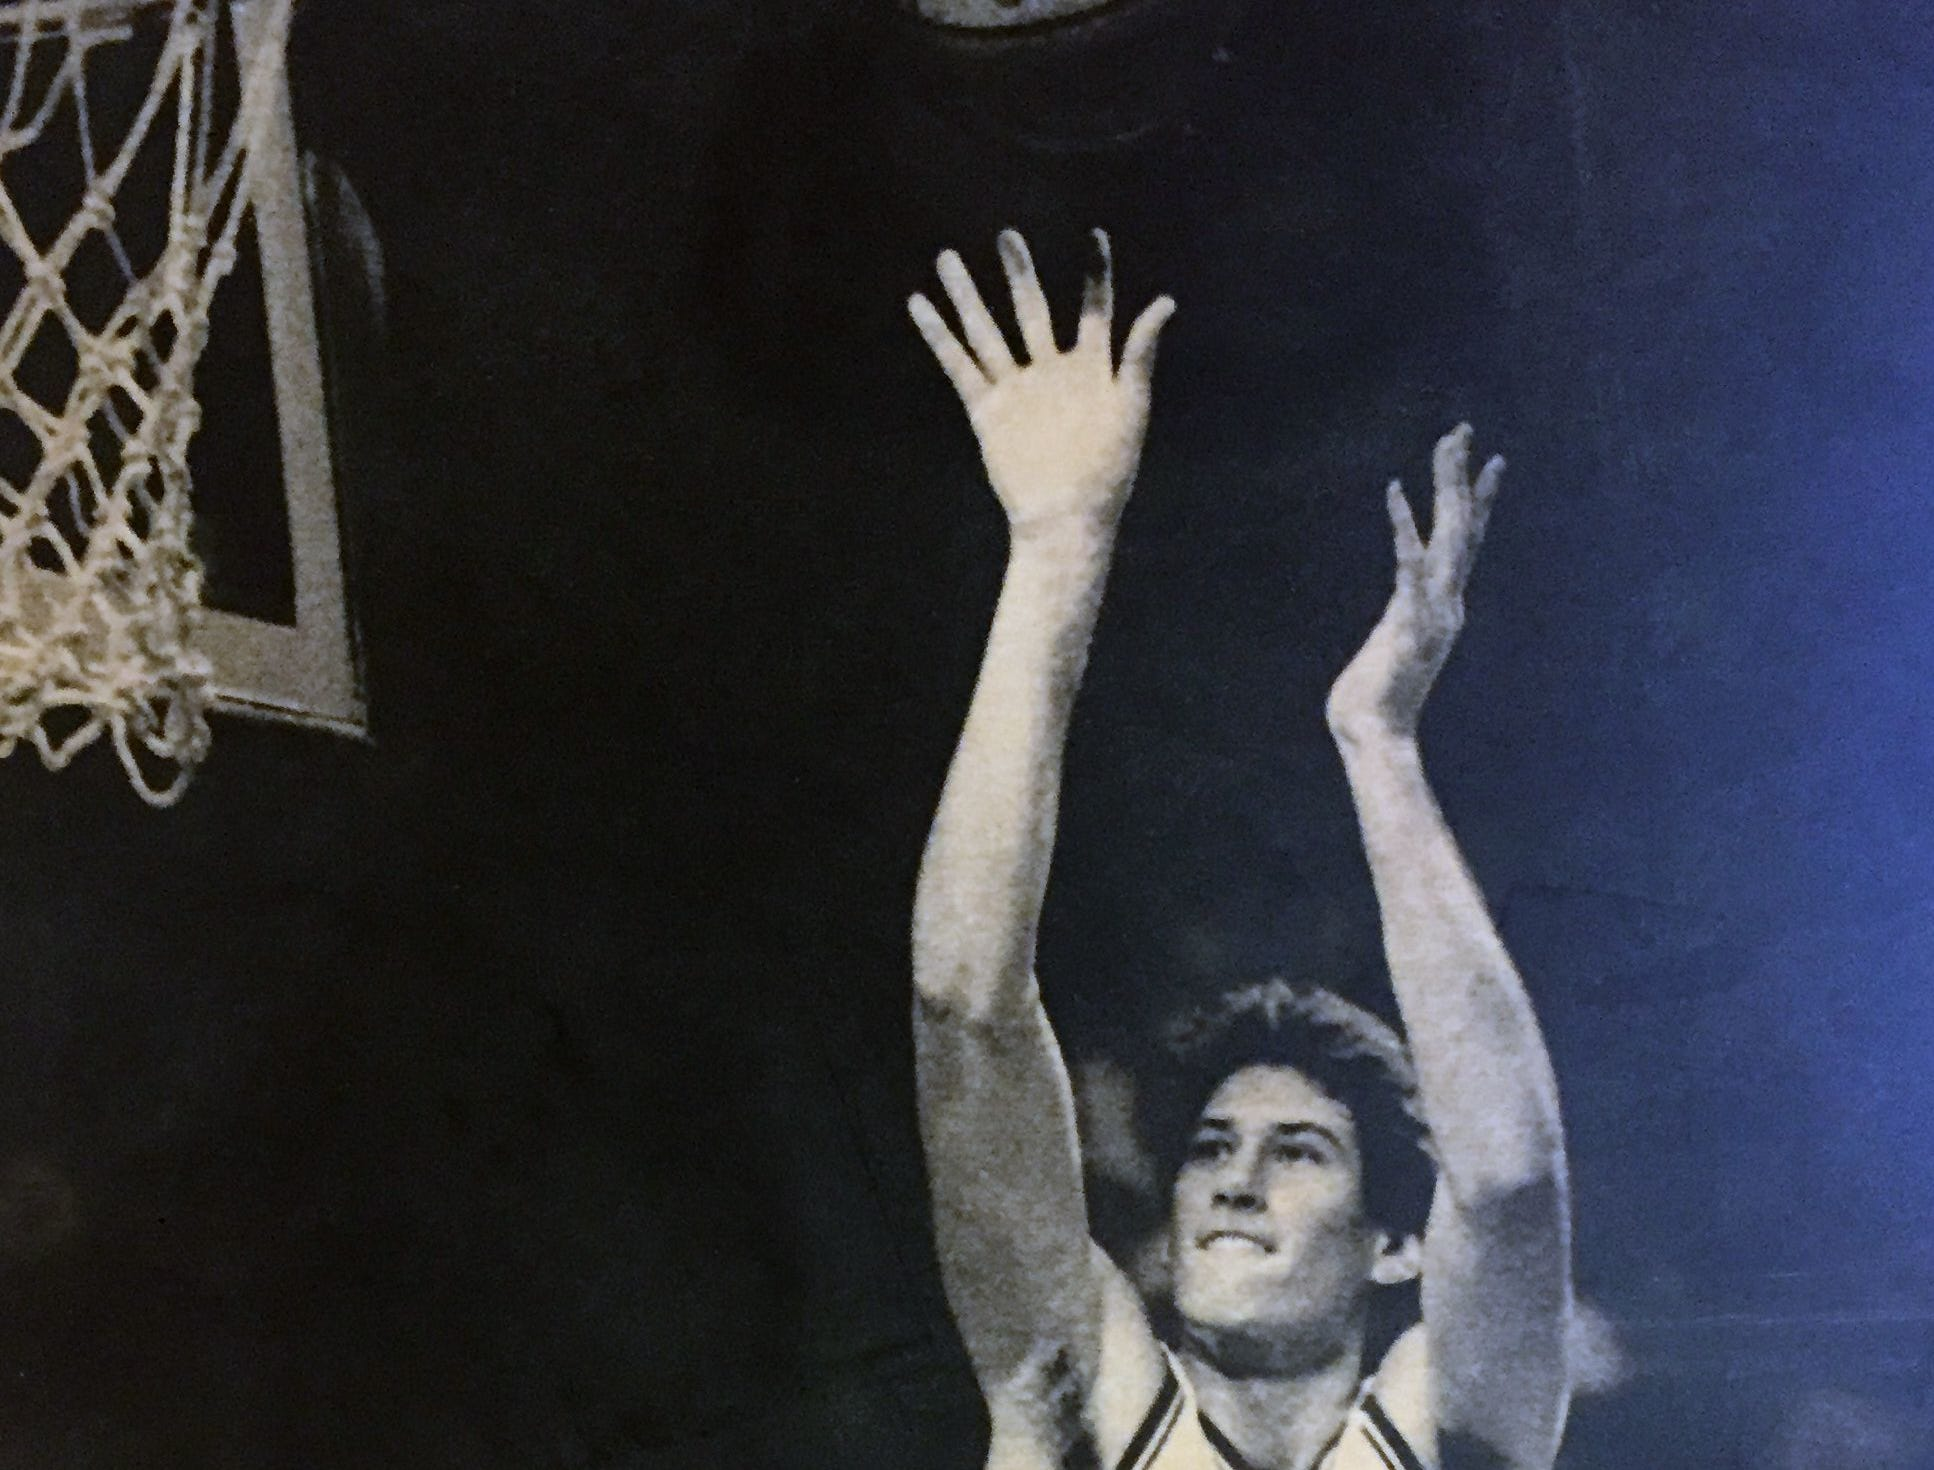 Bret Bearup was a 6-foot-9 McDonald's All-American high school star that played for the University of Kentucky from 1980 to '85.